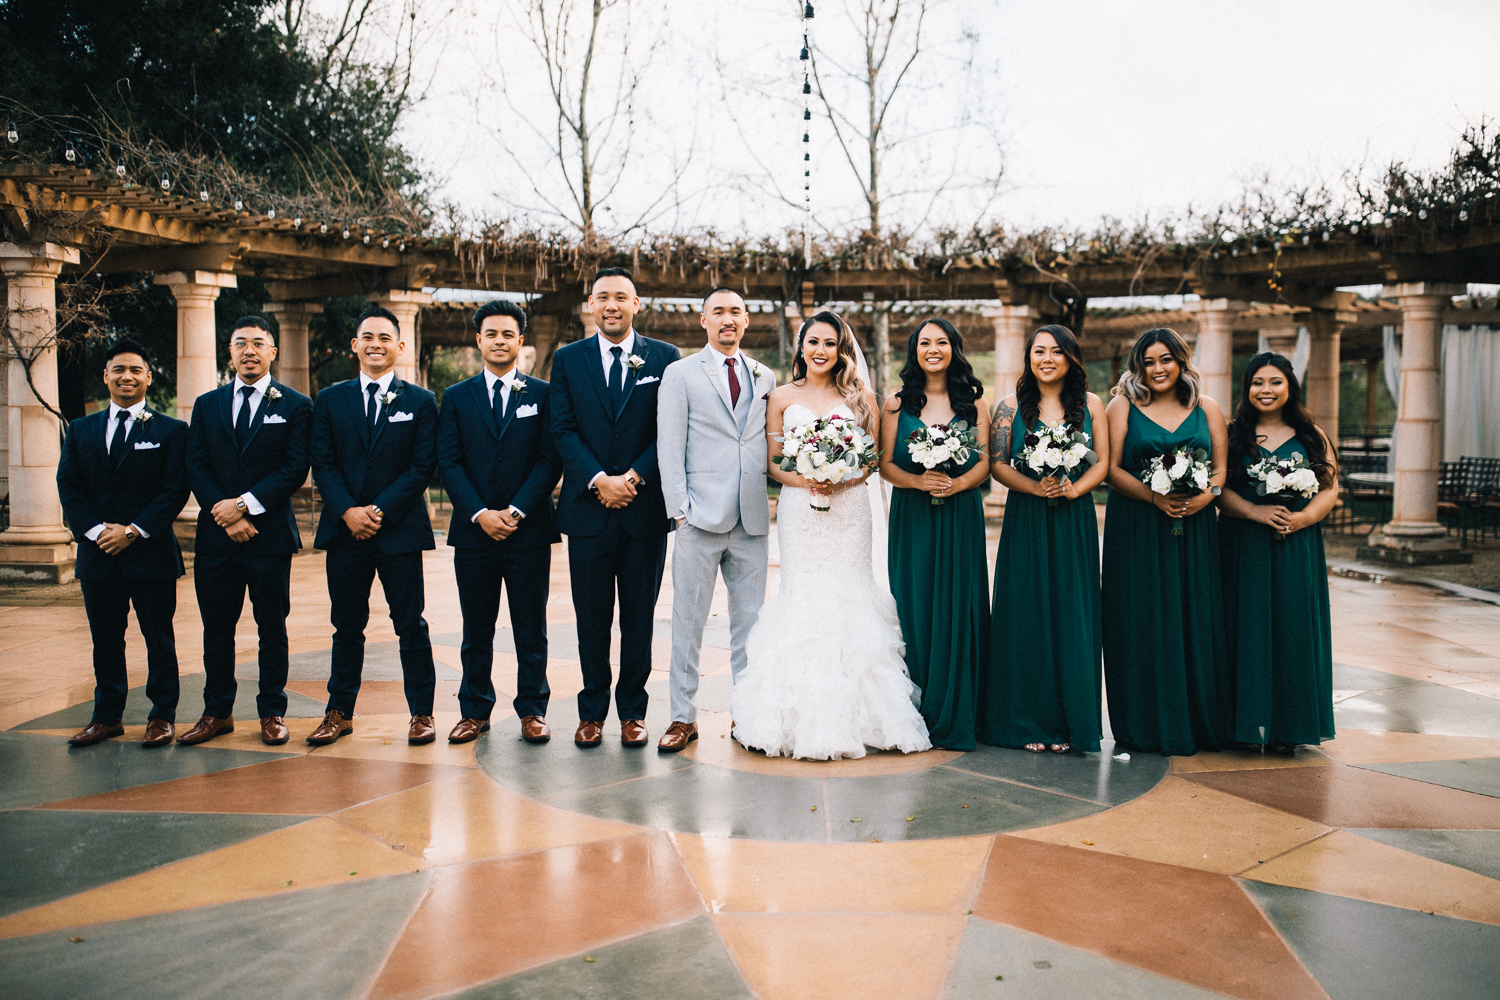 2019_01_ 202019.01.20 Santiago Wedding Blog Photos Edited For Web 0064.jpg